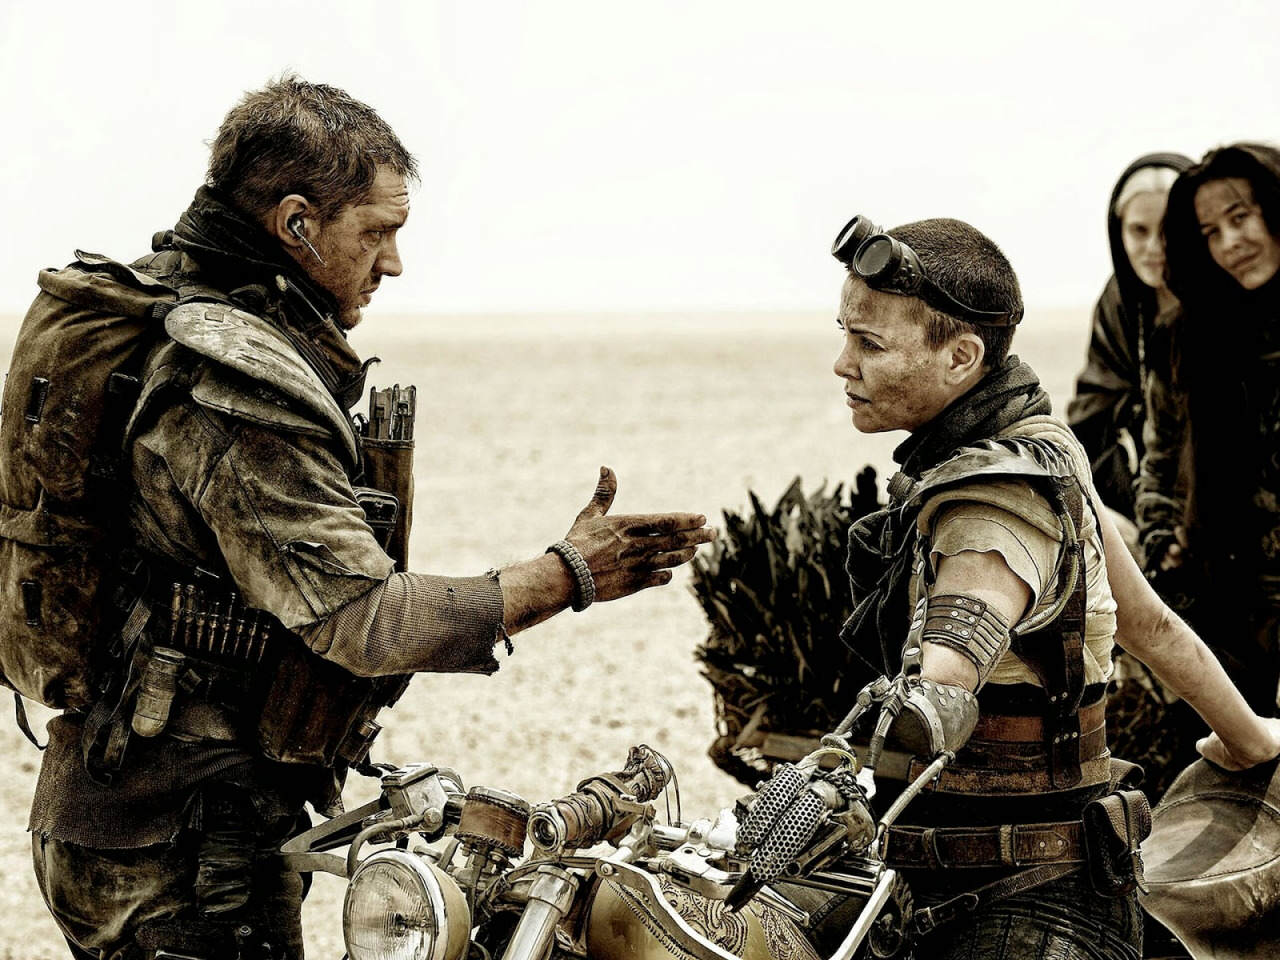 Ss mad max fury road 144 Charlize Theron Says She Didnt Get Along With Tom Hardy While Filming Mad Max